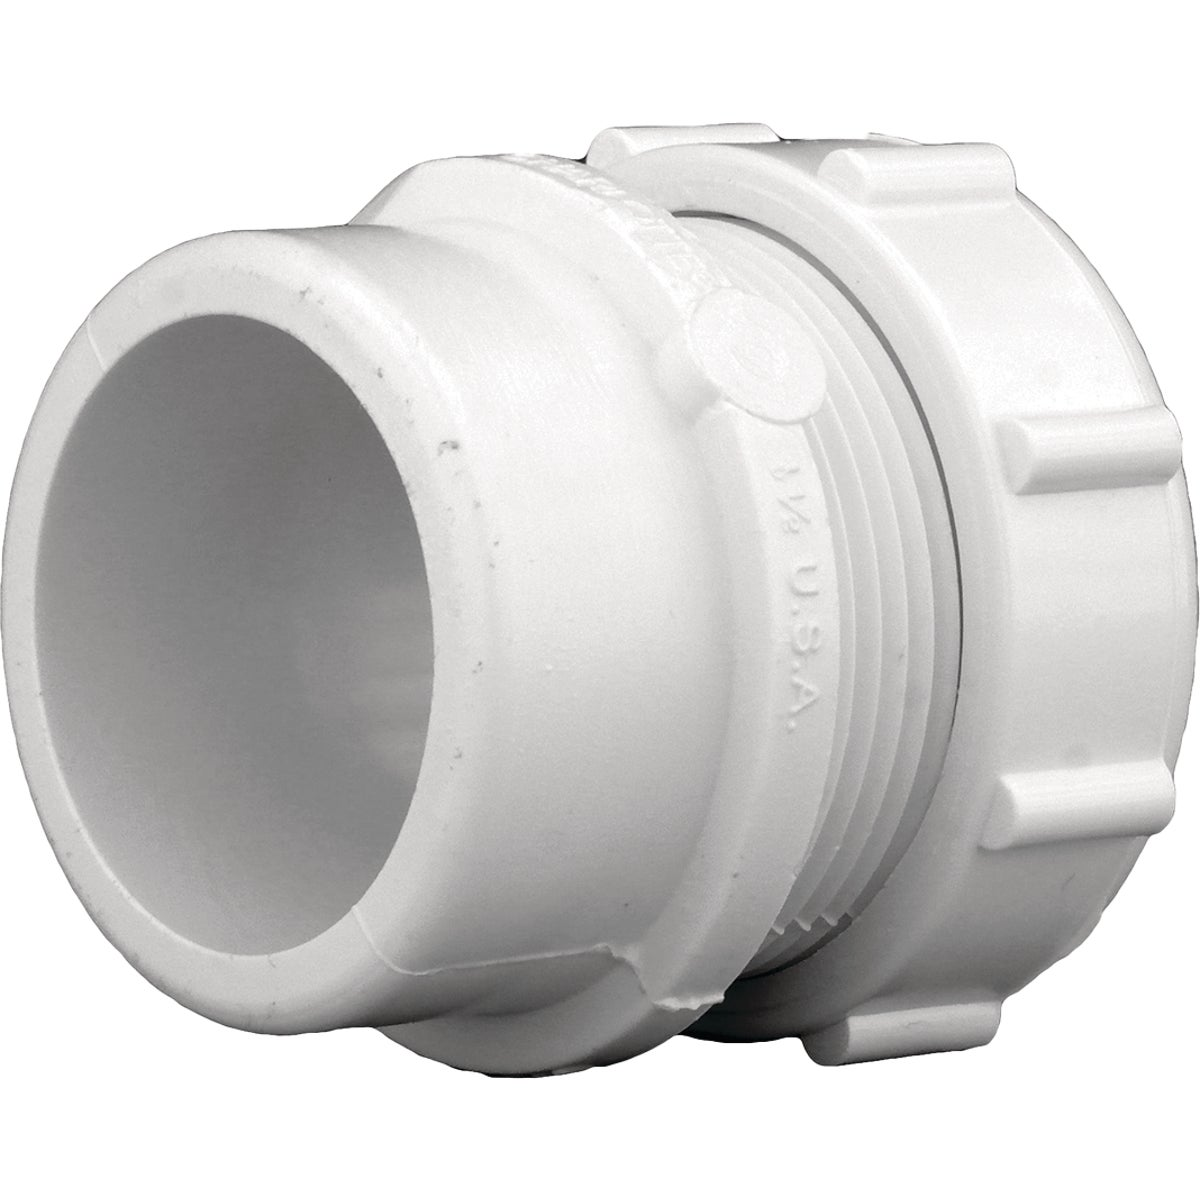 1-1/2X1-1/4 M ADAPTER - 72311 by Genova Inc  Pvc Dwv